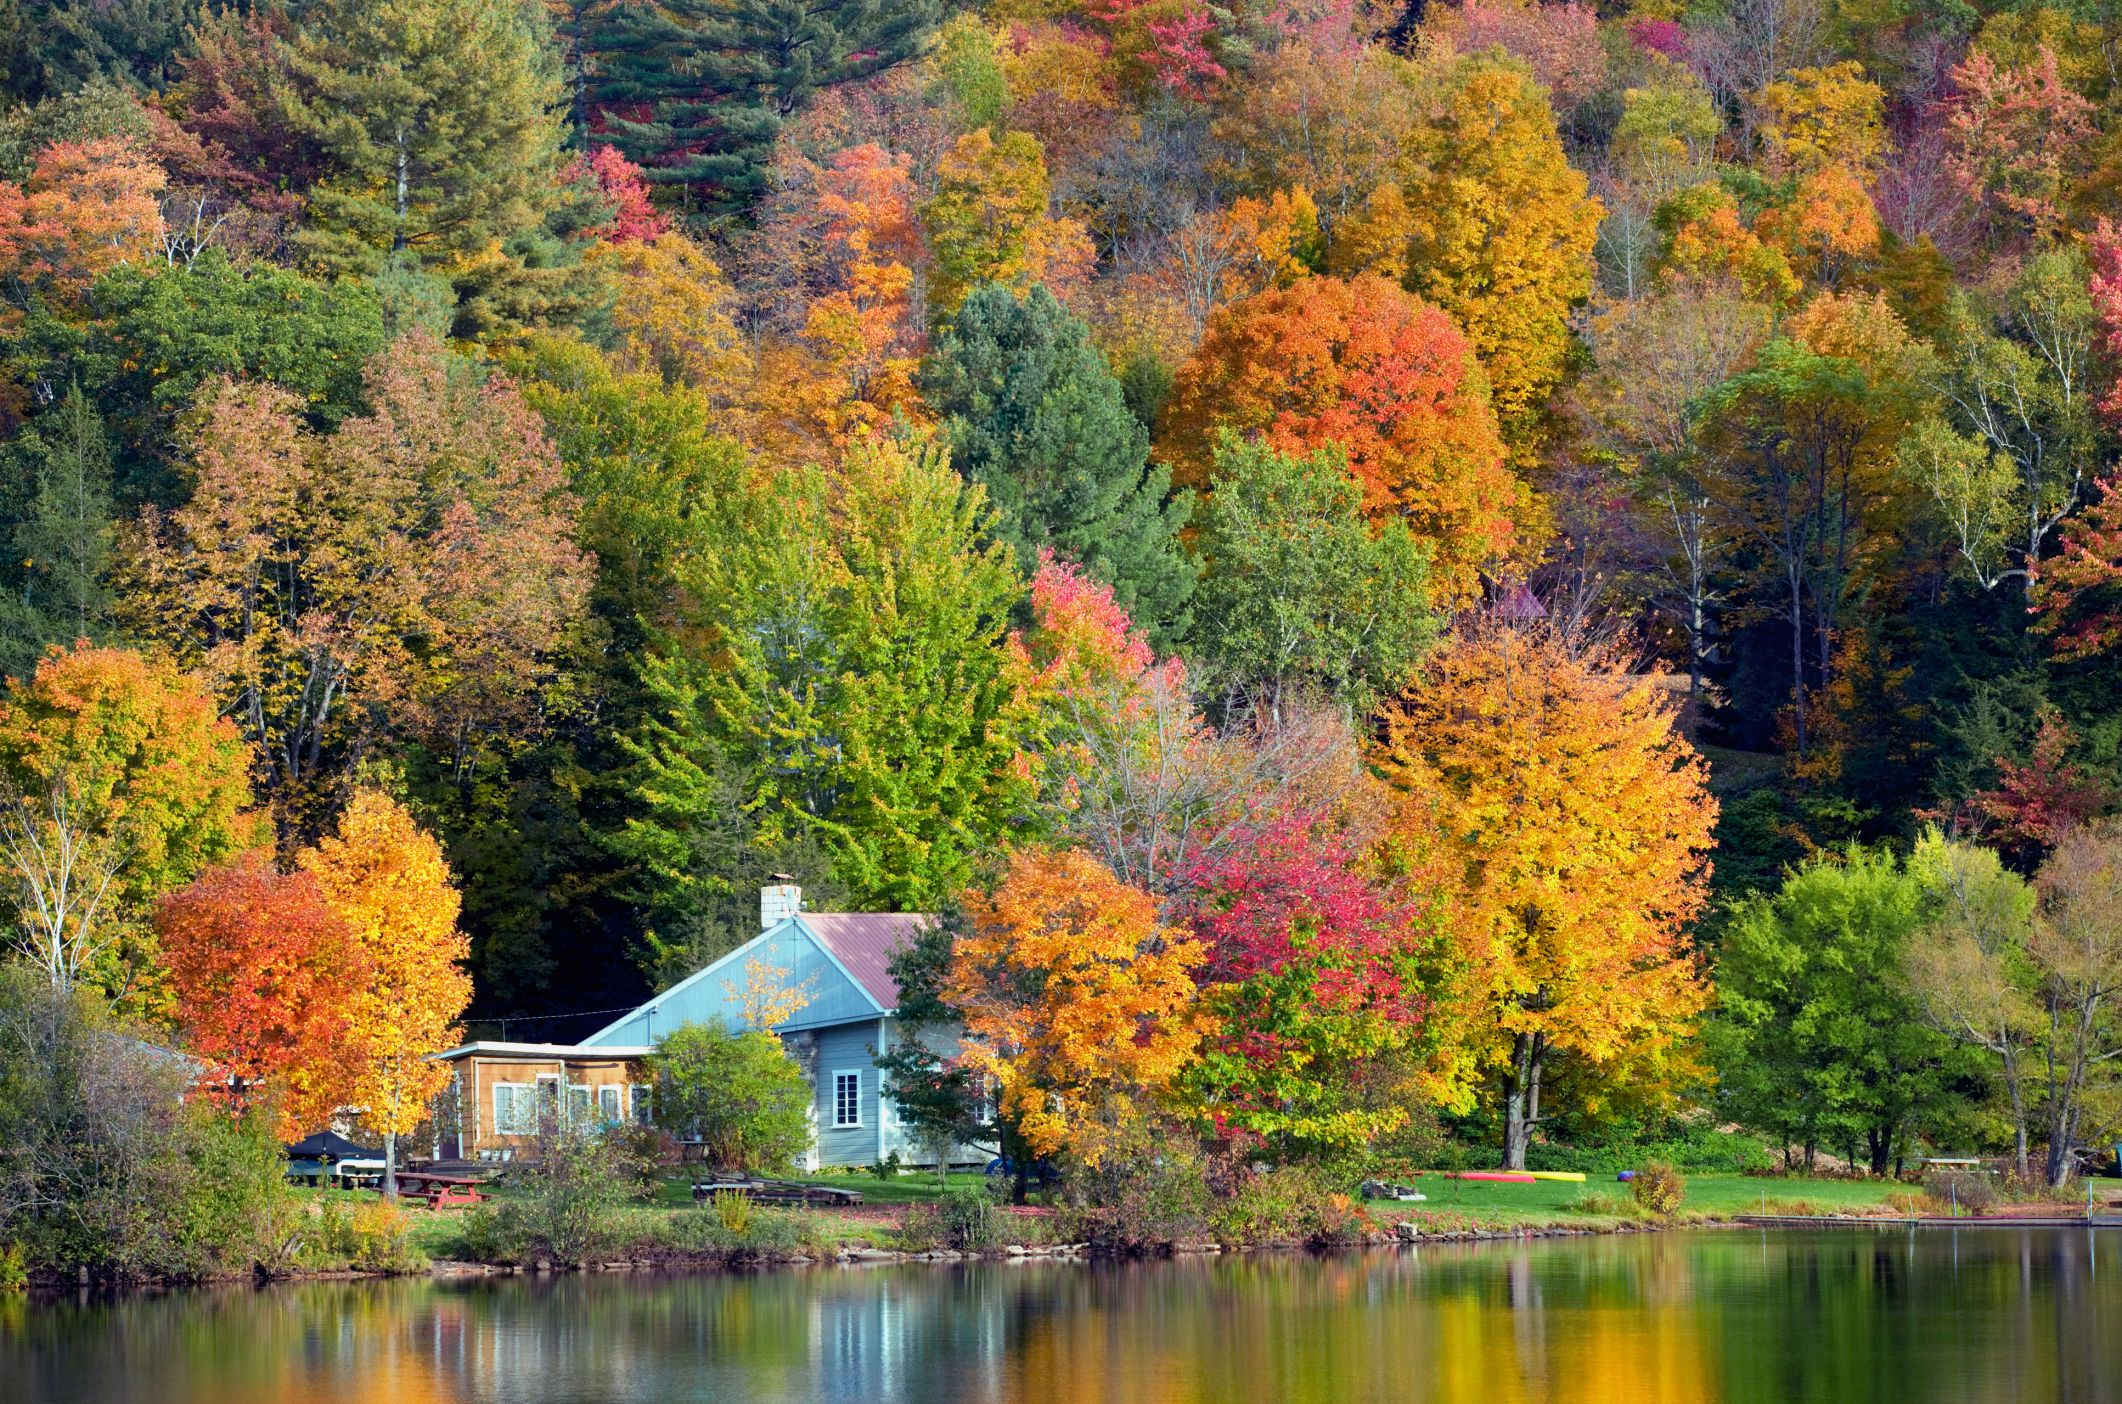 Best Fall Foliage Small Towns in America - Leaf Peeping Destinations